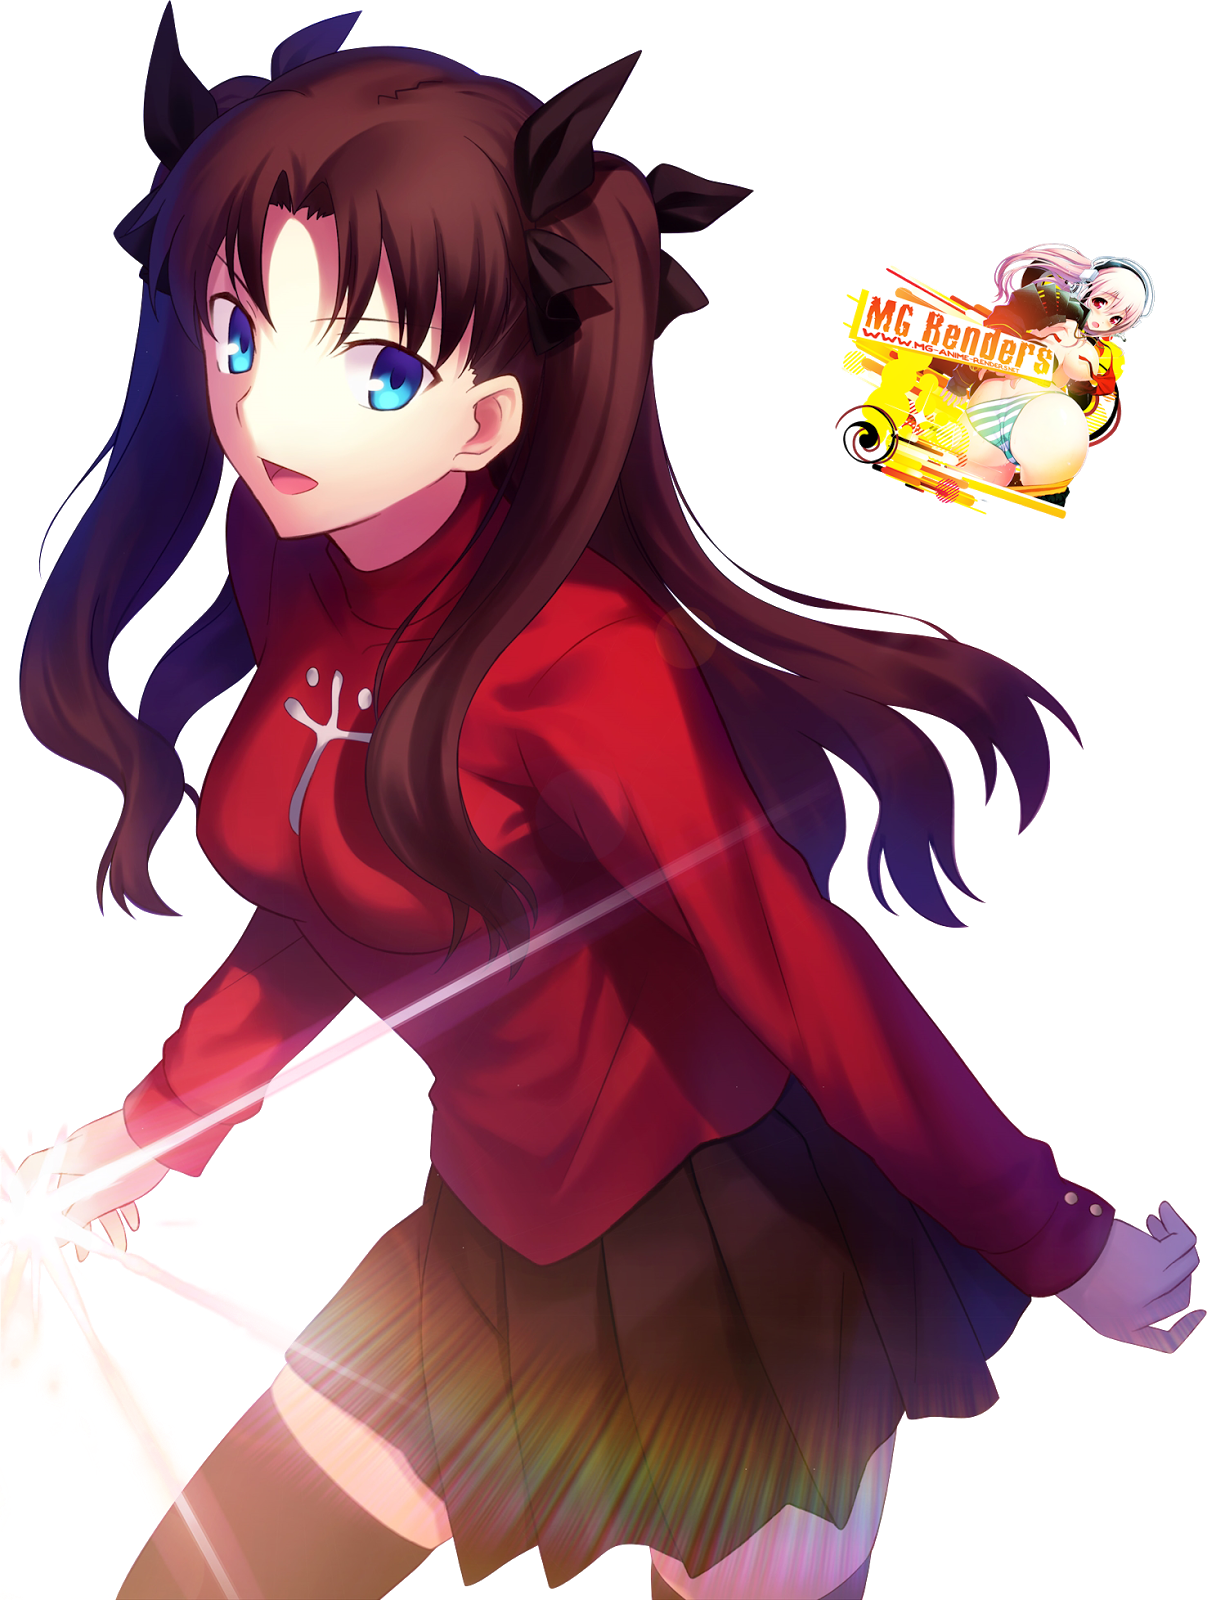 Tags: Anime, Render,  Fate series,  Fate stay night,  Tohsaka Rin, PNG, Image, Picture